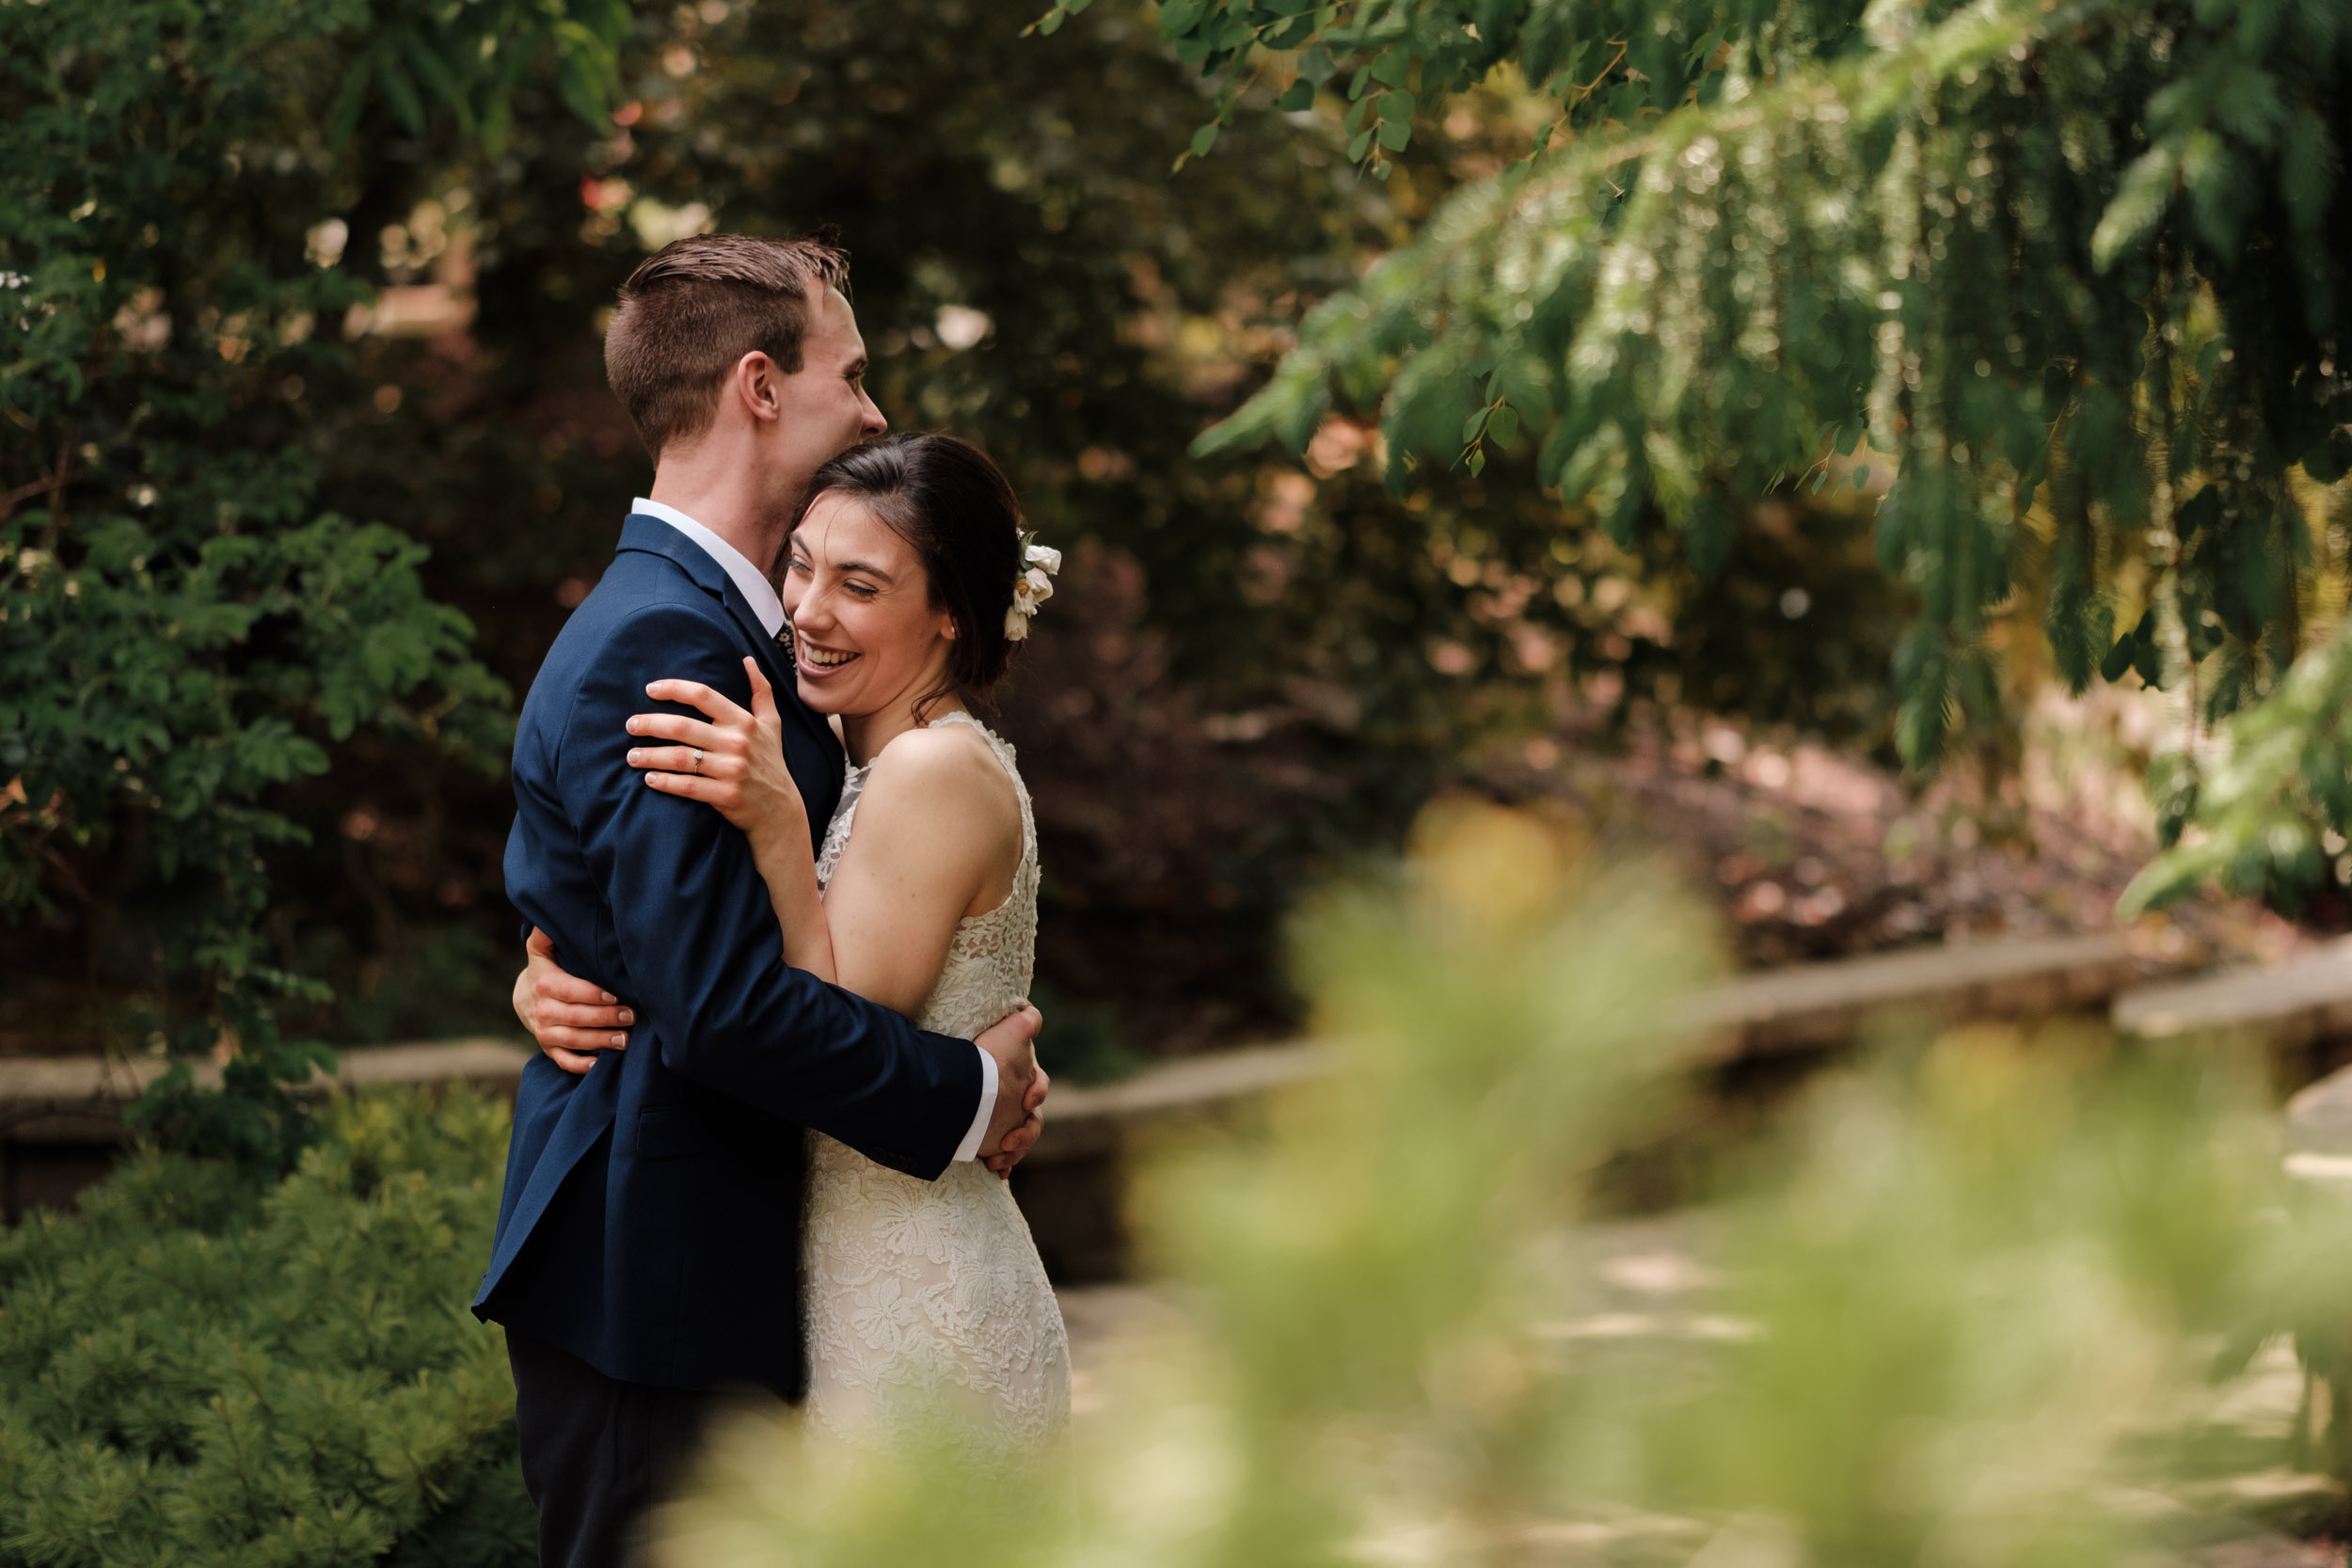 blue suite, eggshell lace bridal dress floral tie embrace on wedding day first look natural candid gardens of woodstock